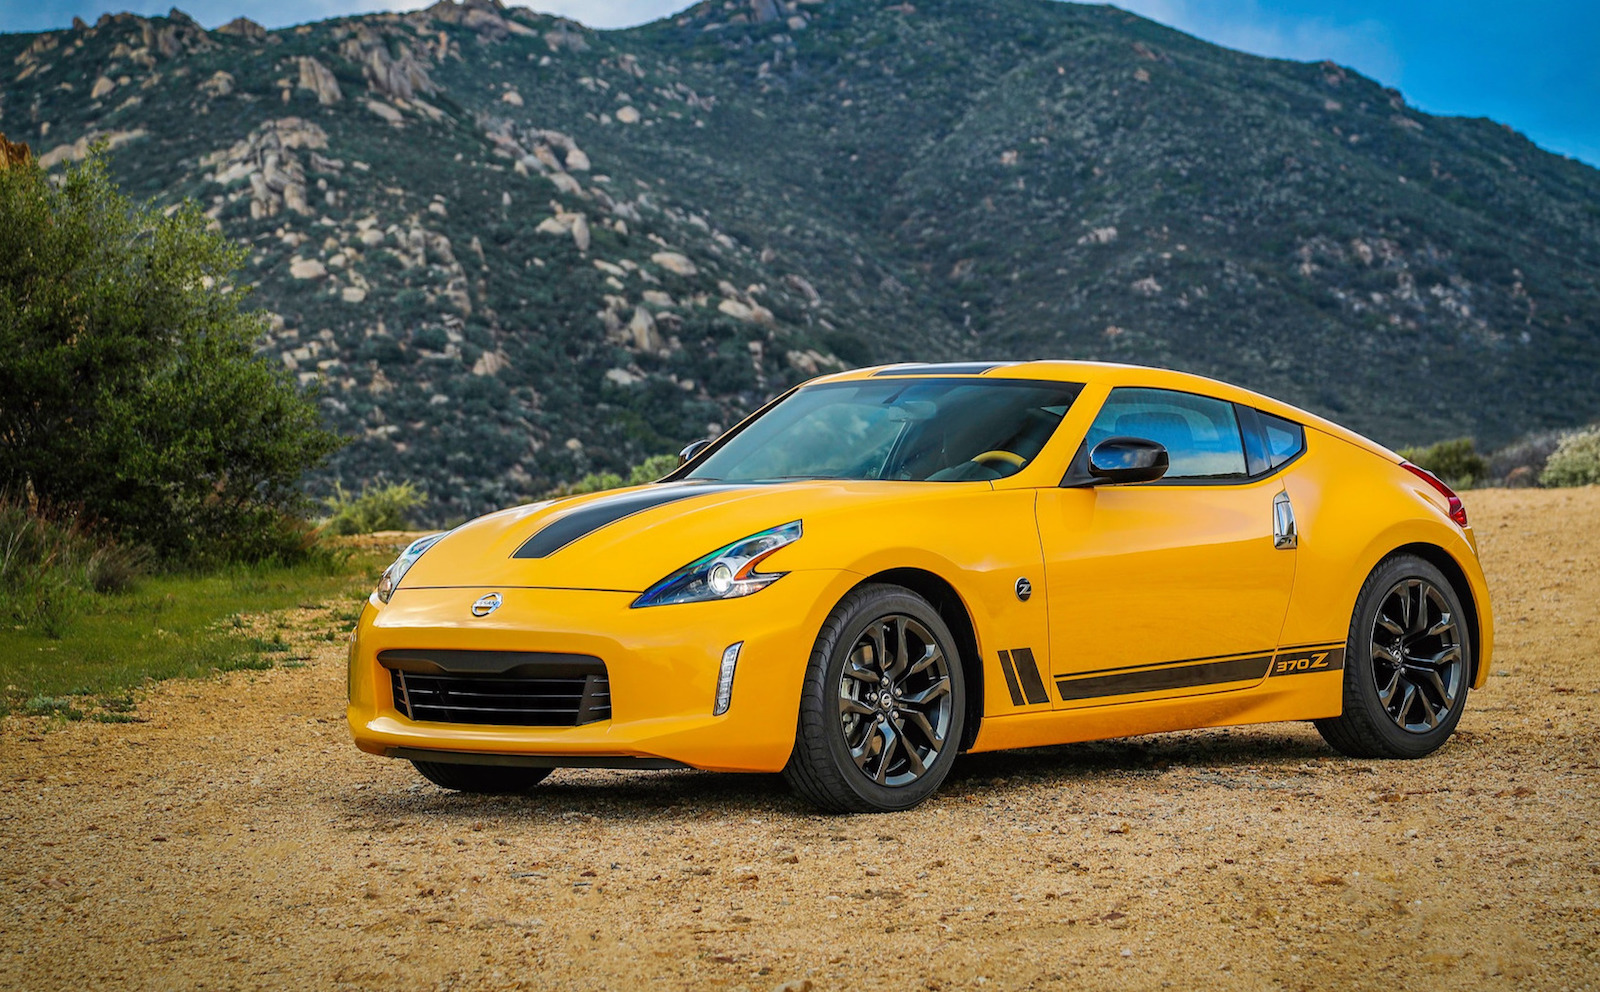 nissan 370z heritage edition celebrates z car 50th anniversary my2018 confirmed performancedrive. Black Bedroom Furniture Sets. Home Design Ideas